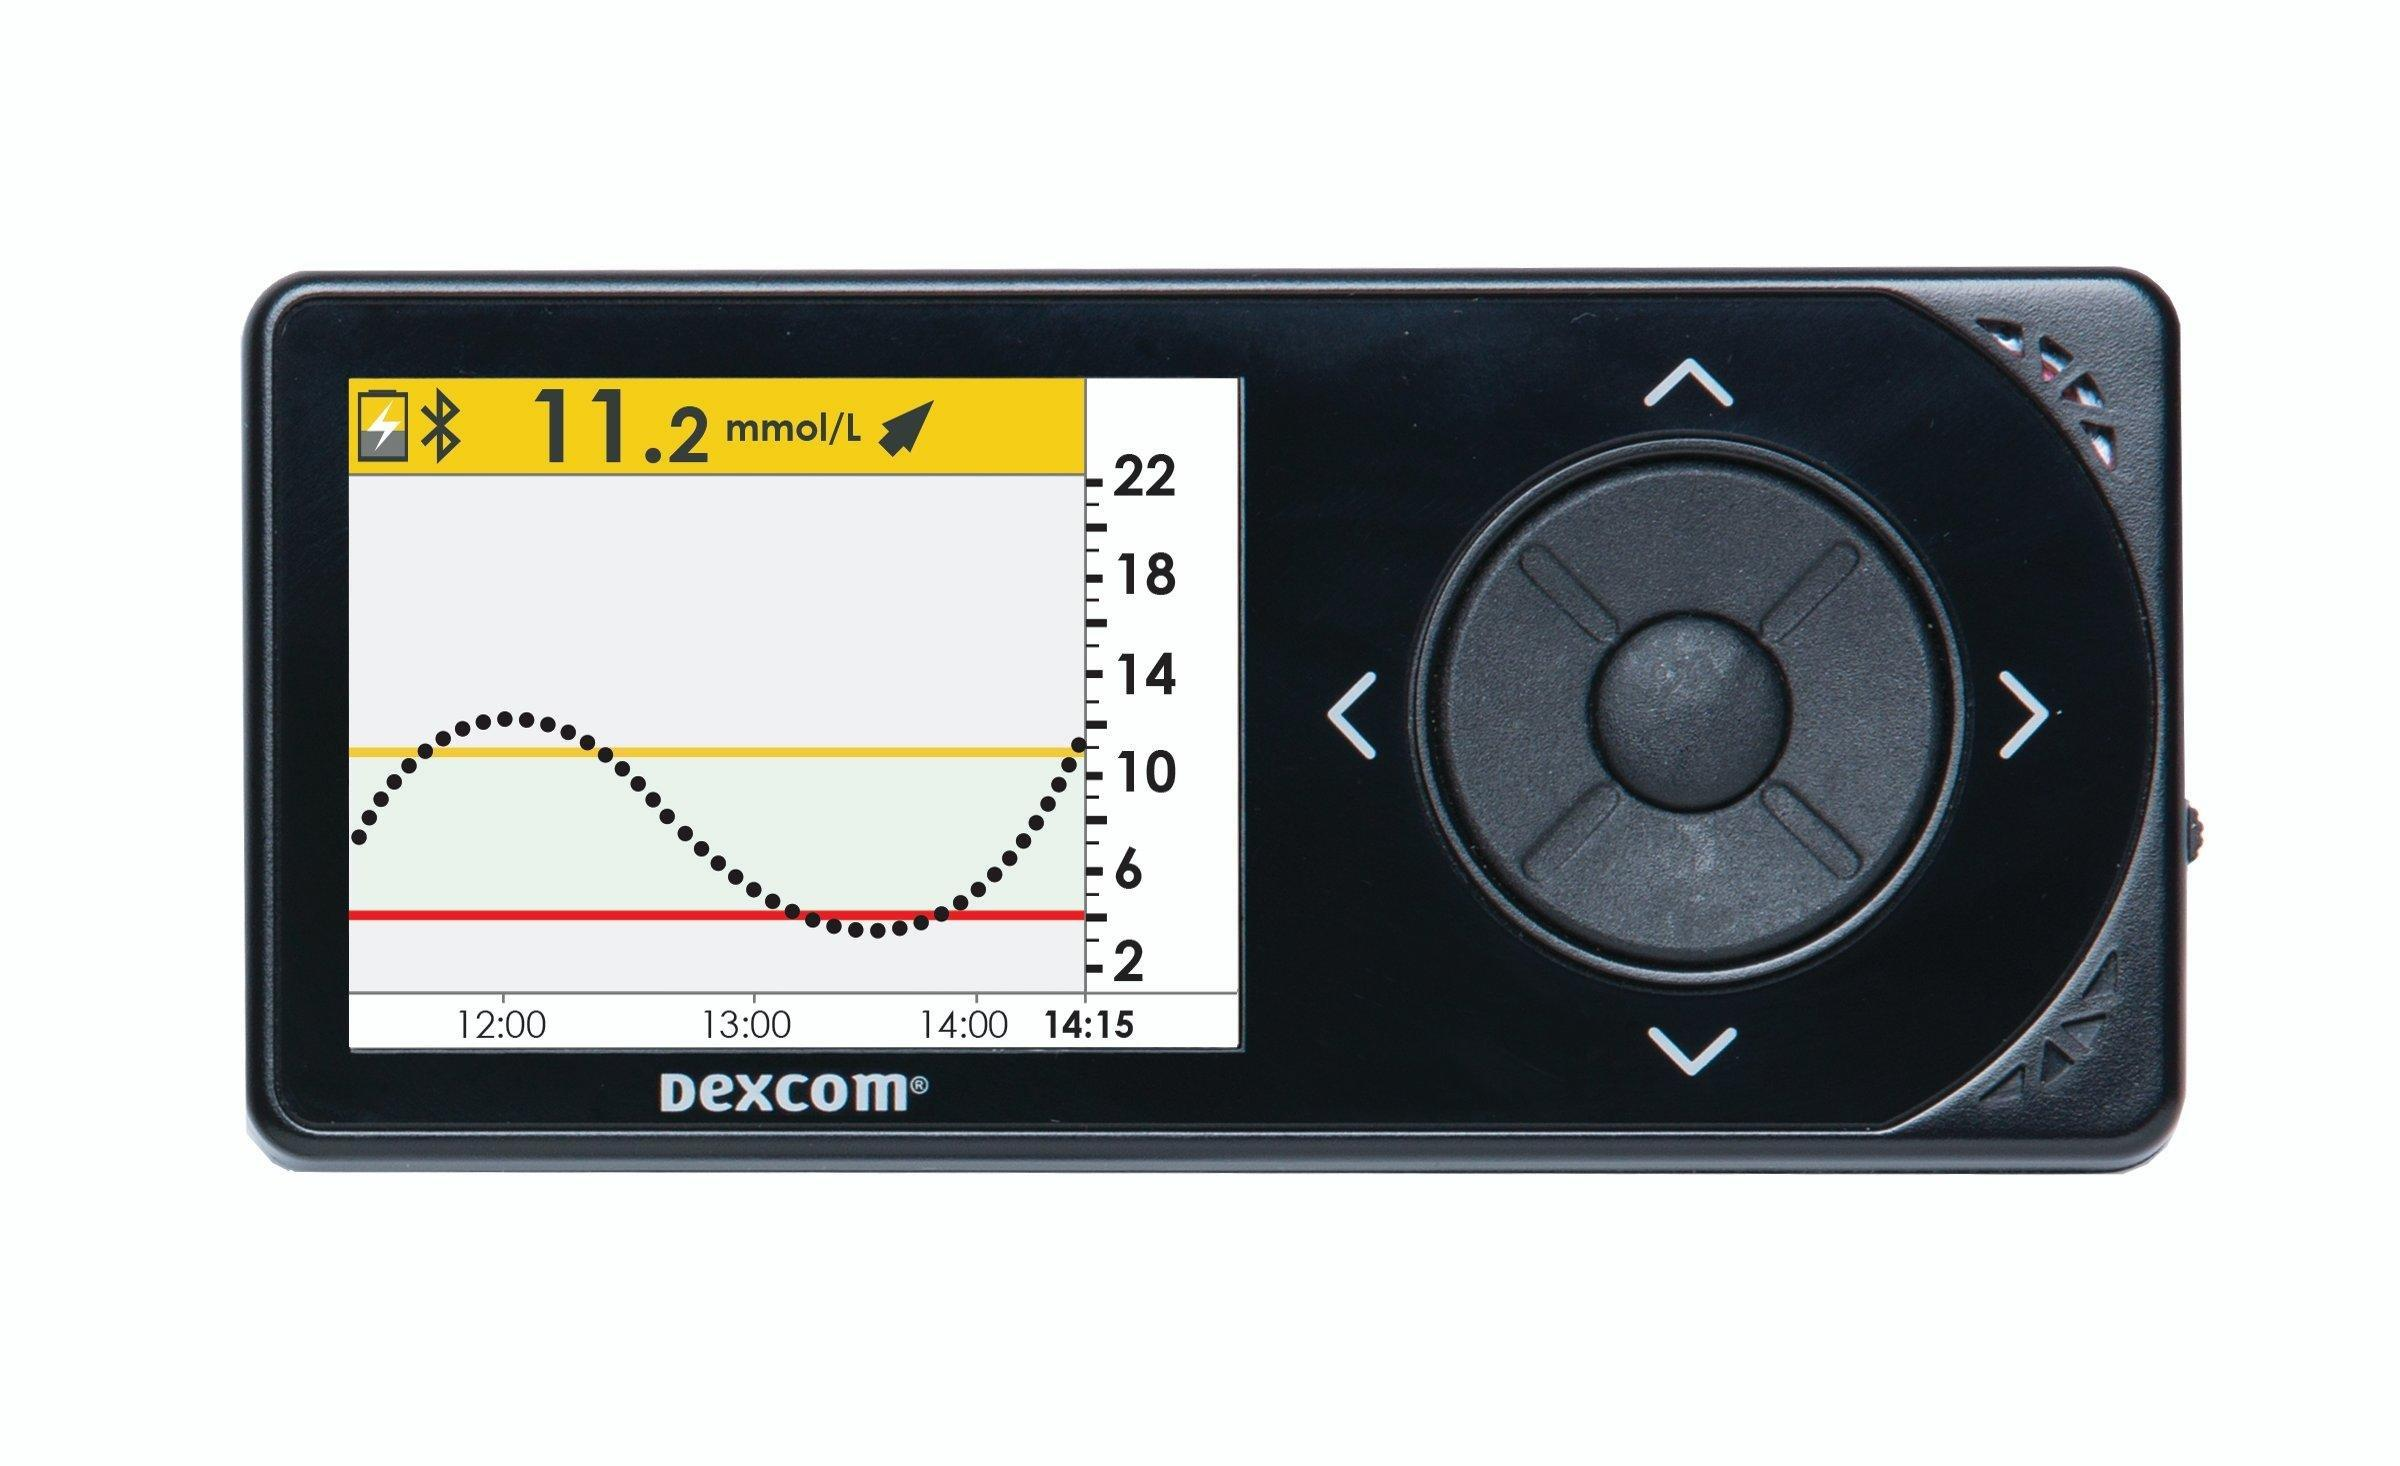 Type 2 Diabetes: Will Continuous Glucose Monitoring (CGM) Help?